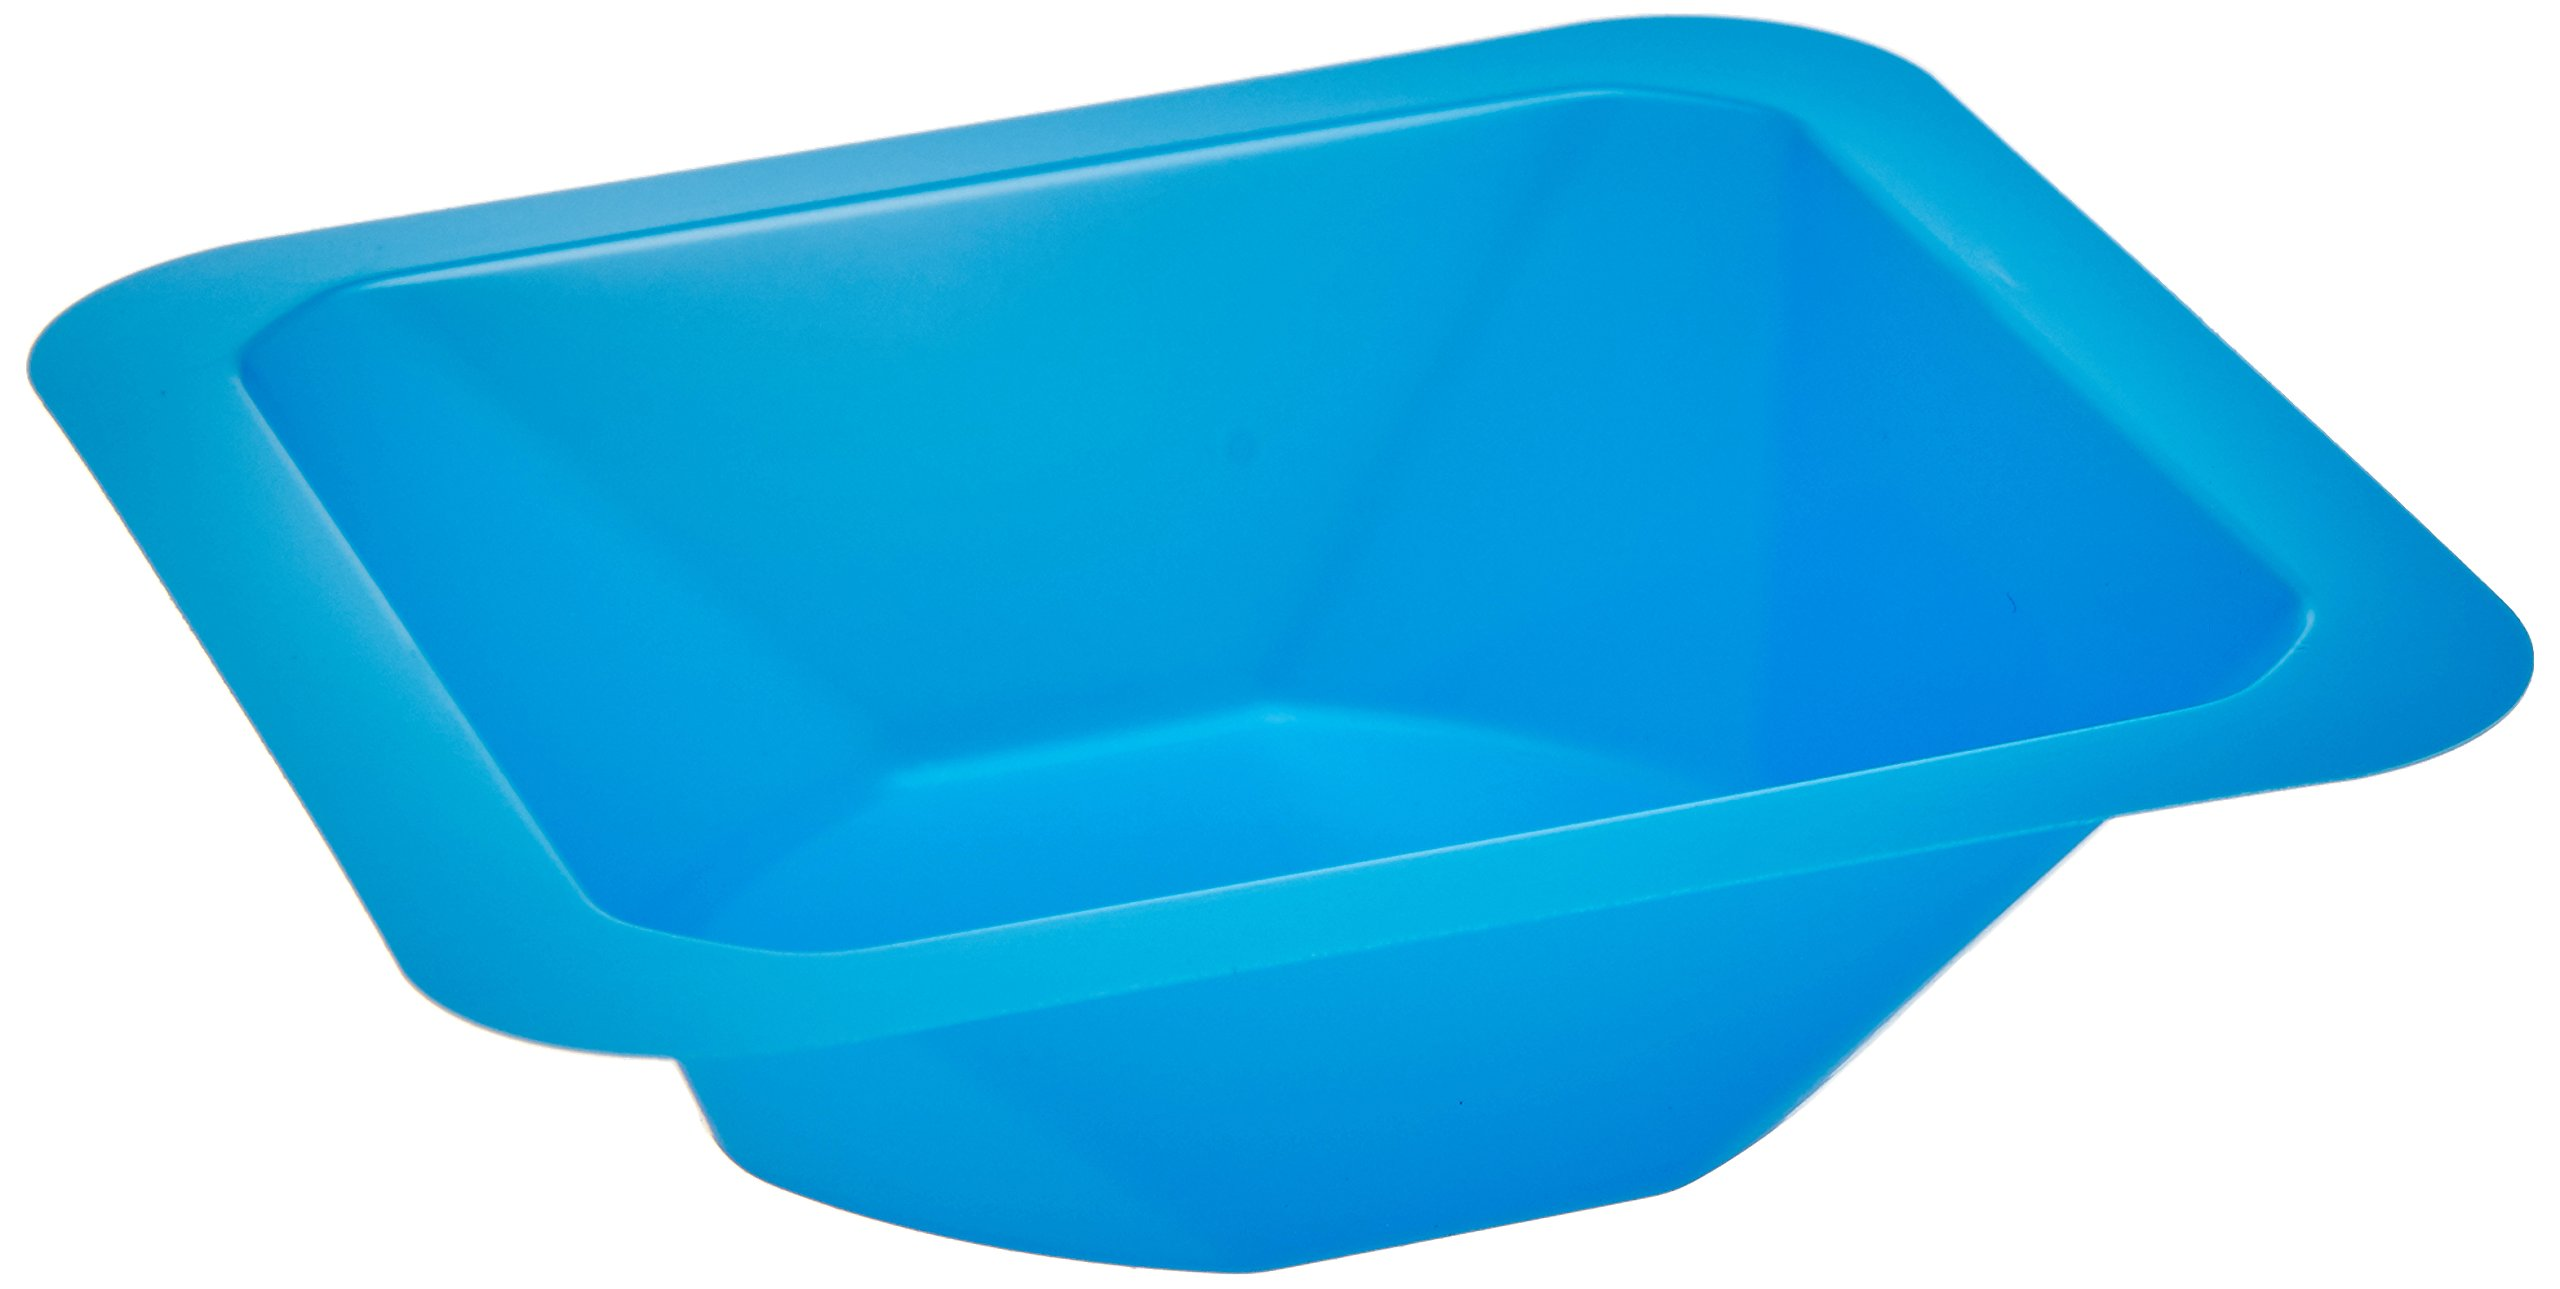 Heathrow HS120223 Weigh Boat, Medium, Blue (Pack of 500) by Heathrow Scienitific